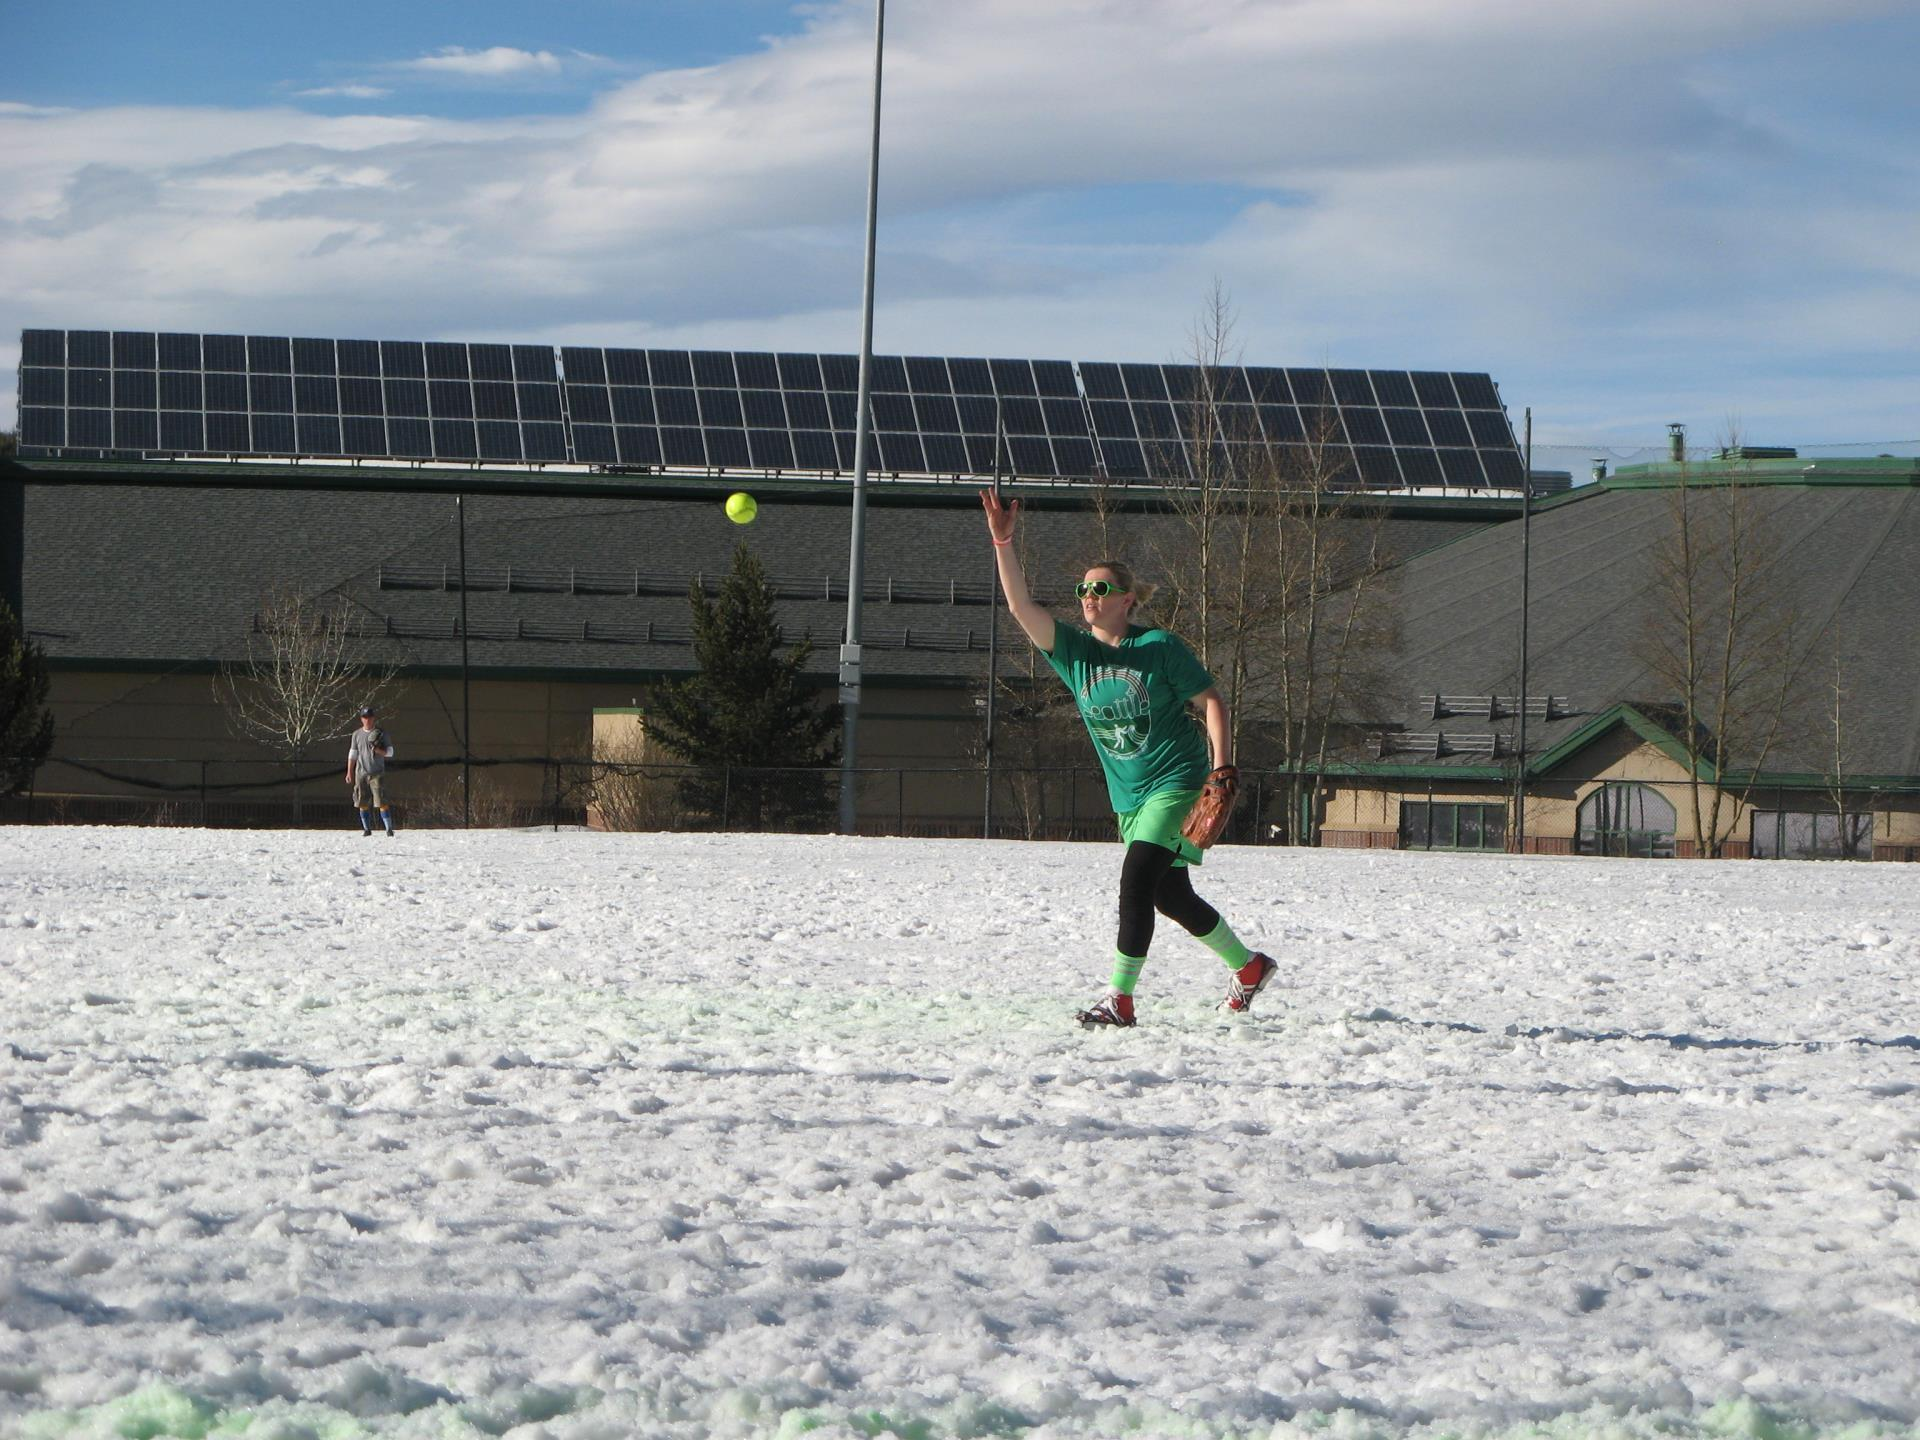 Pitcher pitching softball in Snowpitch Softball Tournament